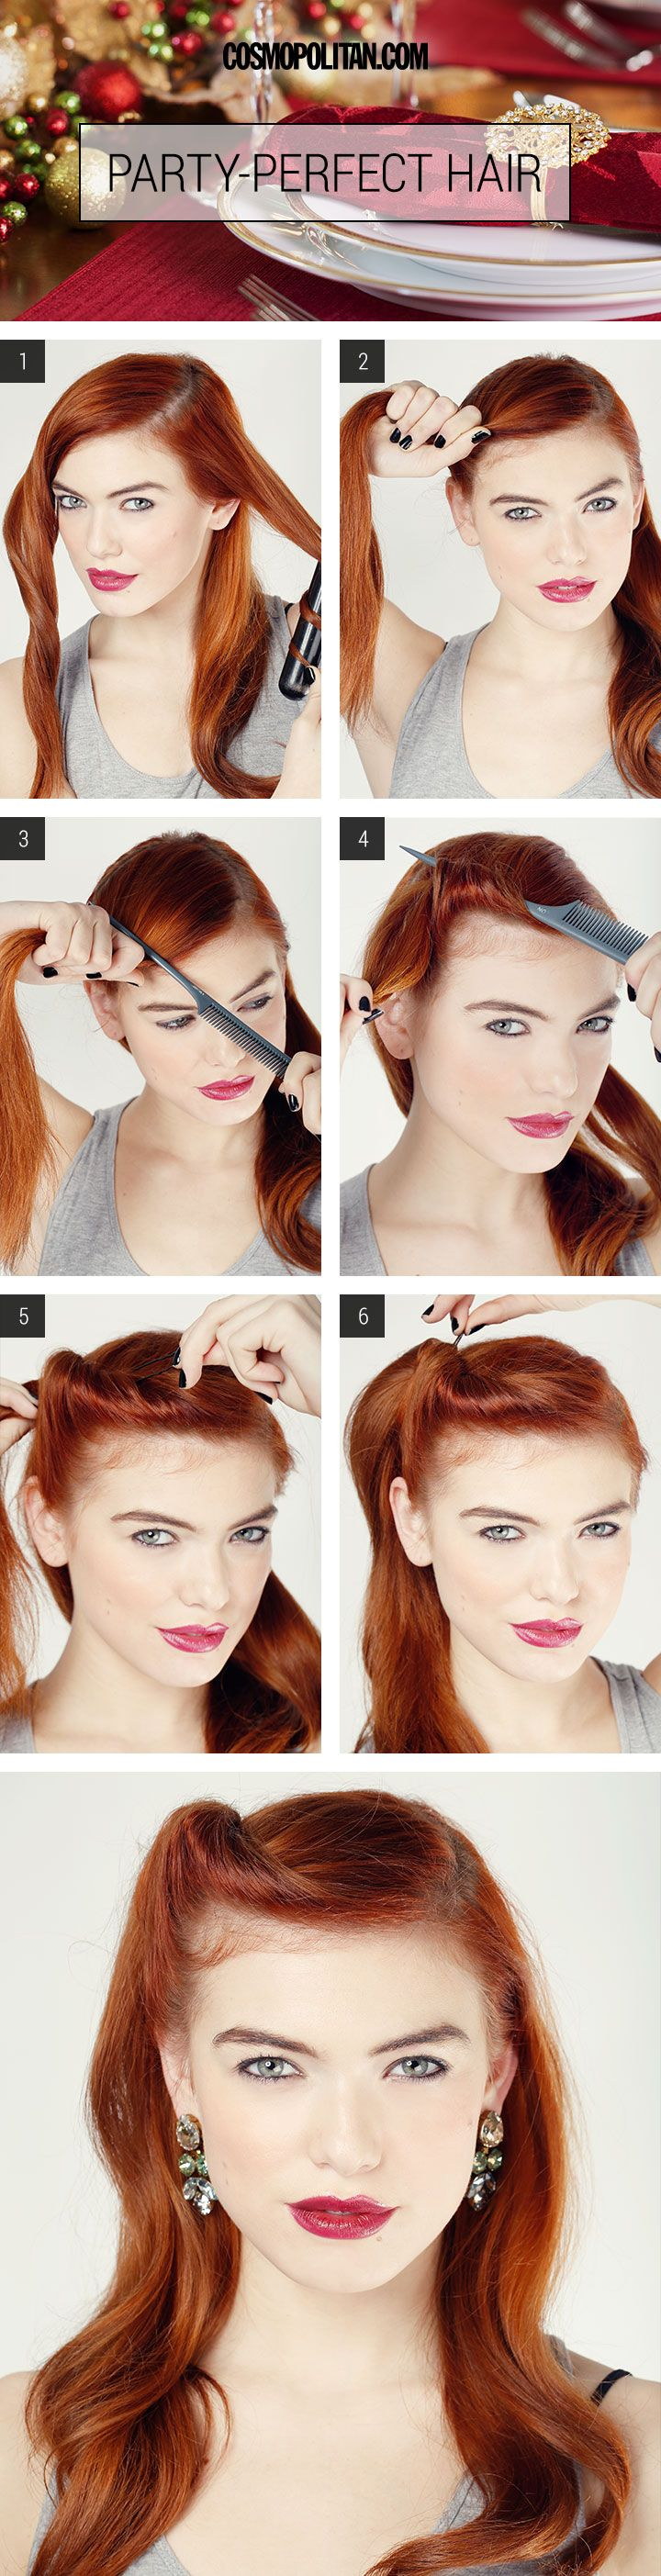 lazy girl hairstyles - easy